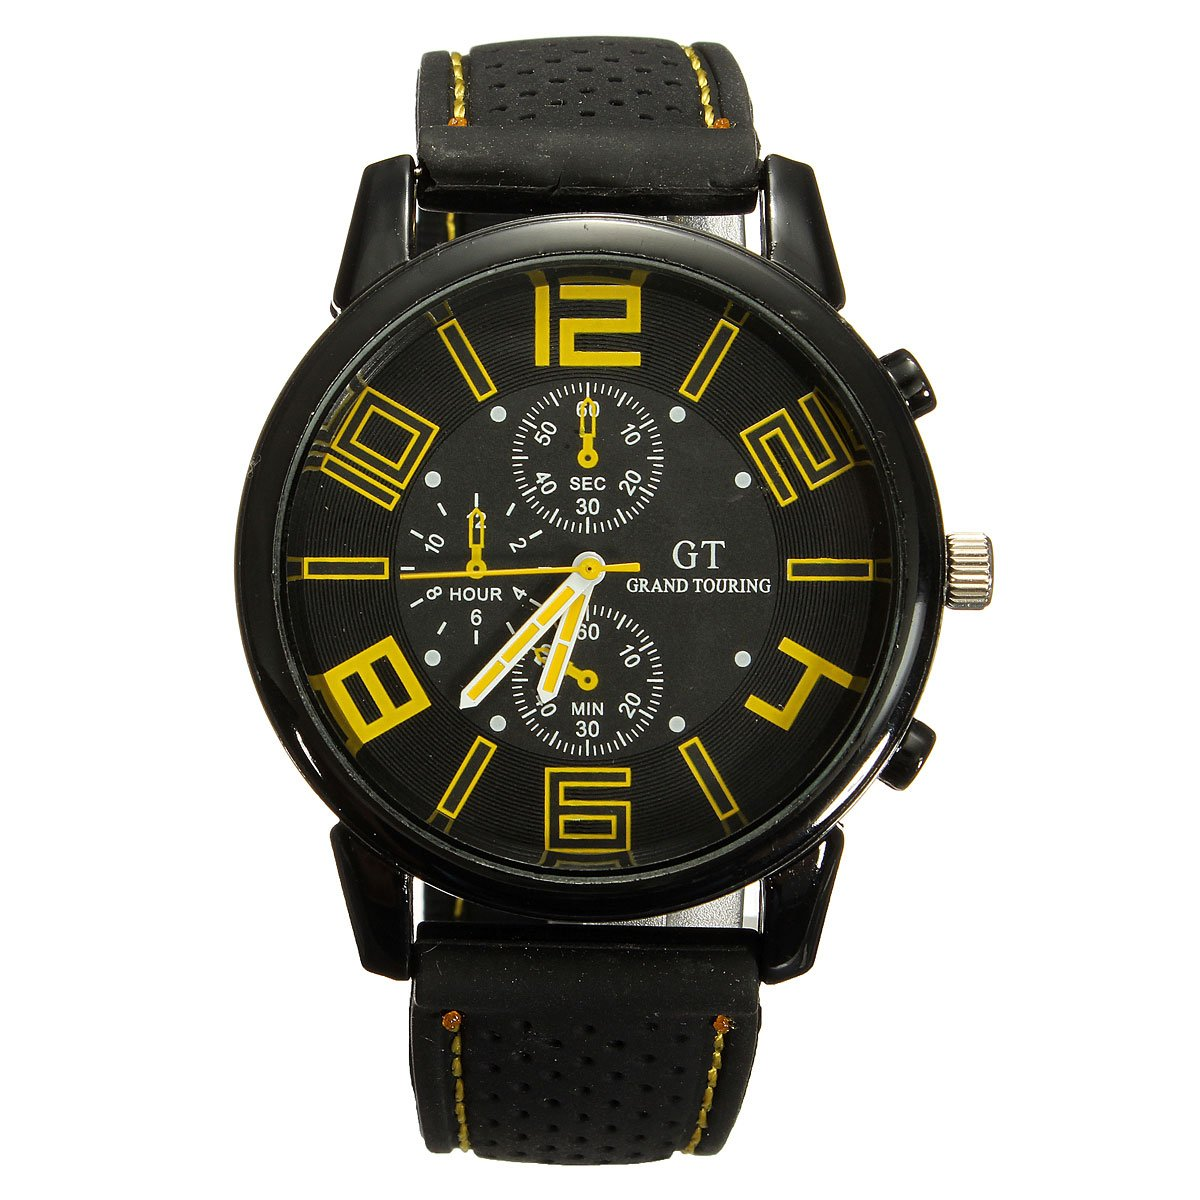 Grand Touring Bracelet Watch Man Quartz Analog Silicone Quartz Wrist Watch Big Dial Yellow and Black купить в Москве 2019